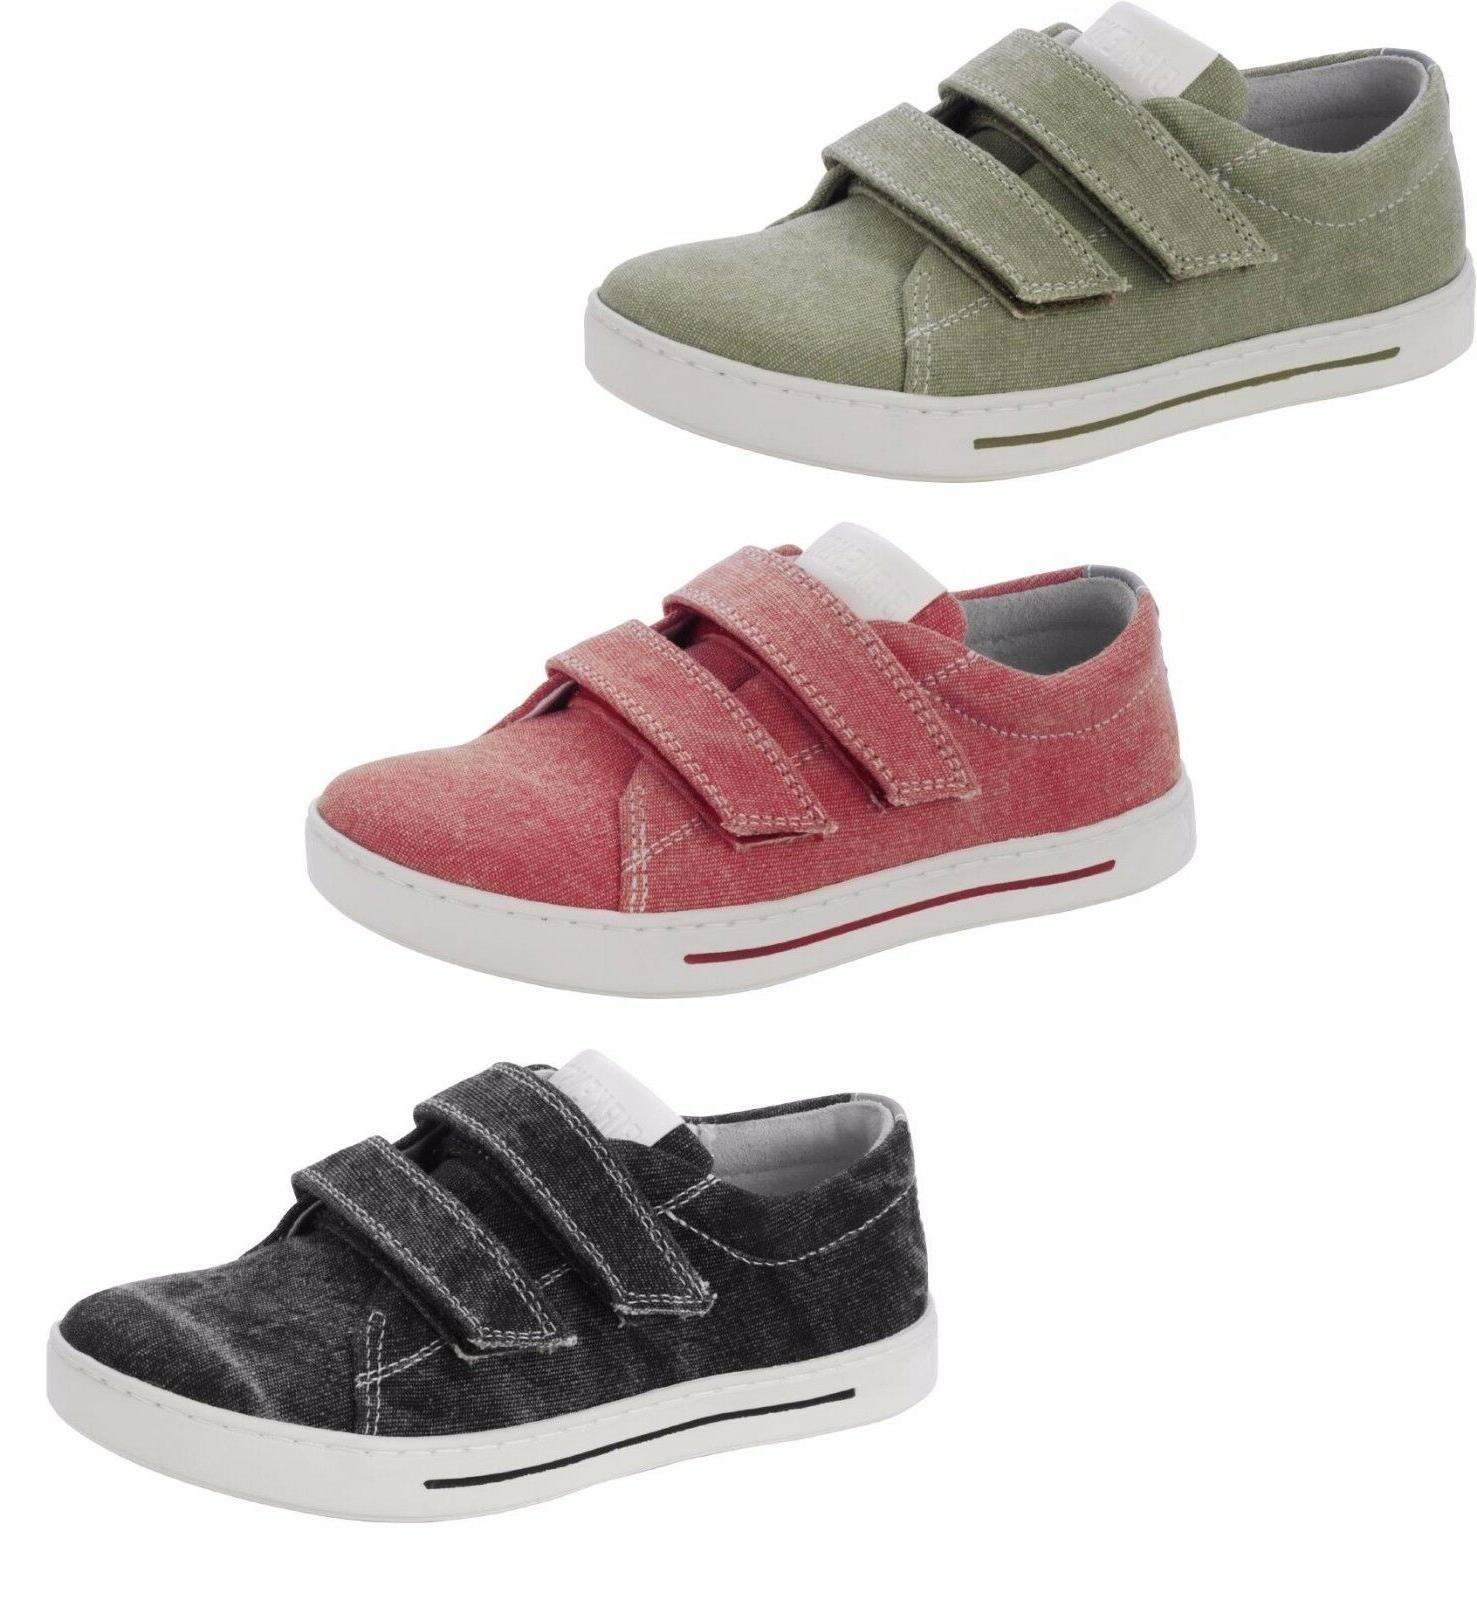 BIRKENSTOCK KIDS SHOES ARRAN TEXTILE CANVAS HOOK & LOOP BOYS